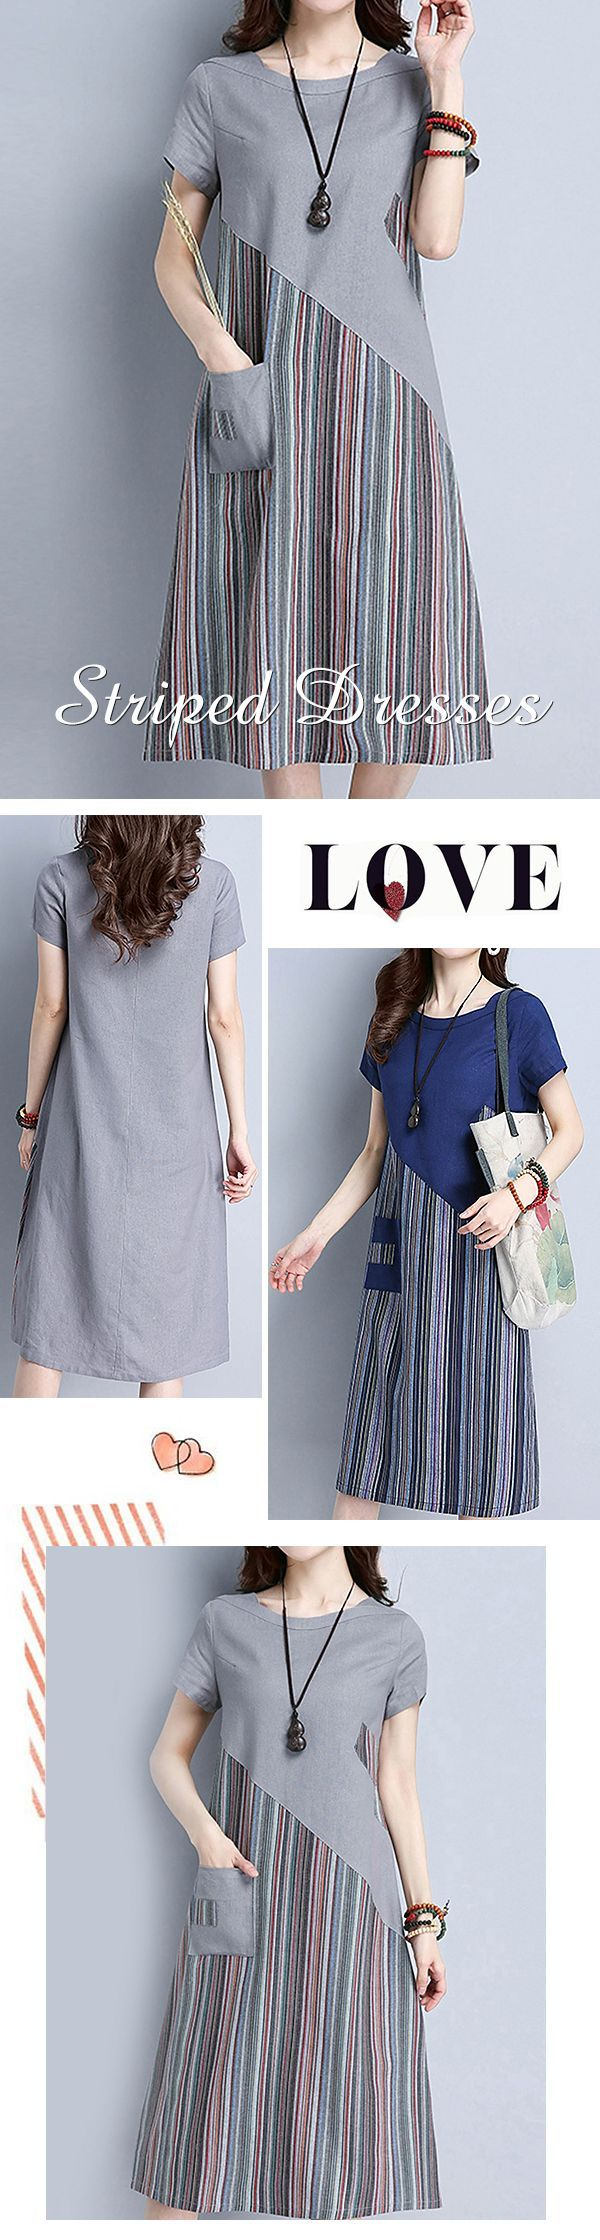 US$ 25.51 Striped Patchwork O Neck Short Sleeve Pocket Women Dresses